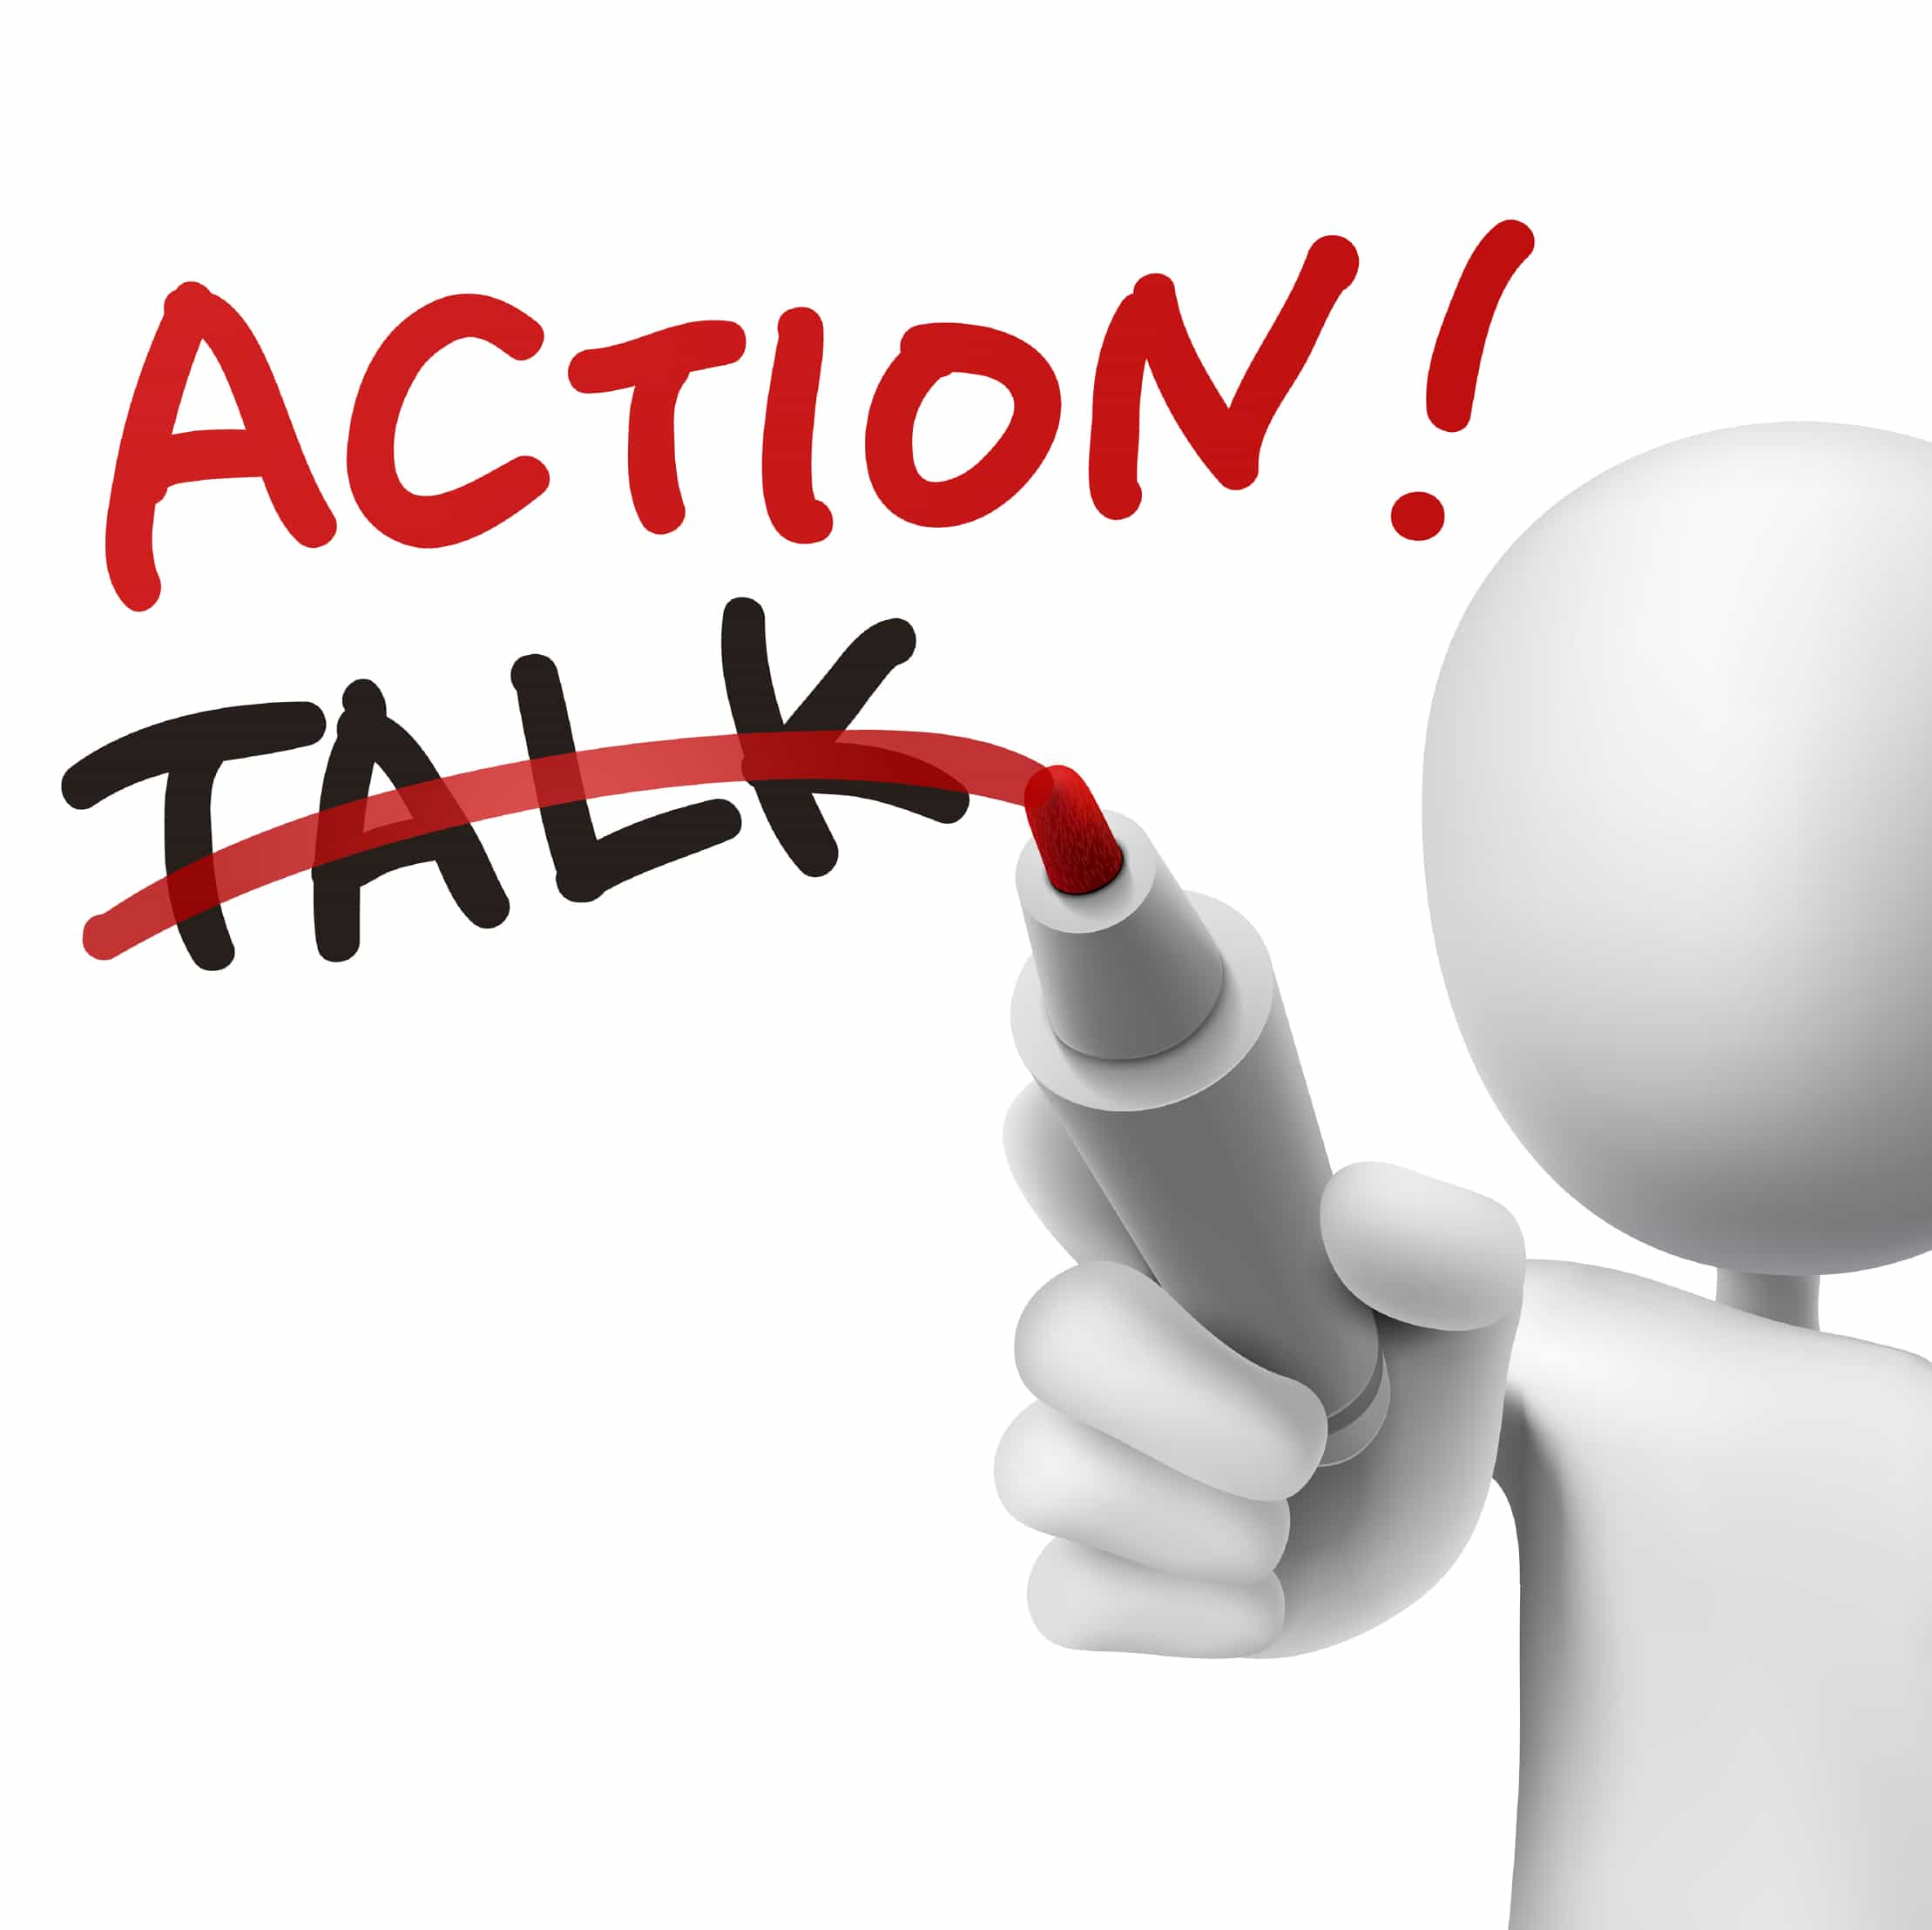 short essay action speaks louder than words  actions speak louder than words essay meaning quotes speech